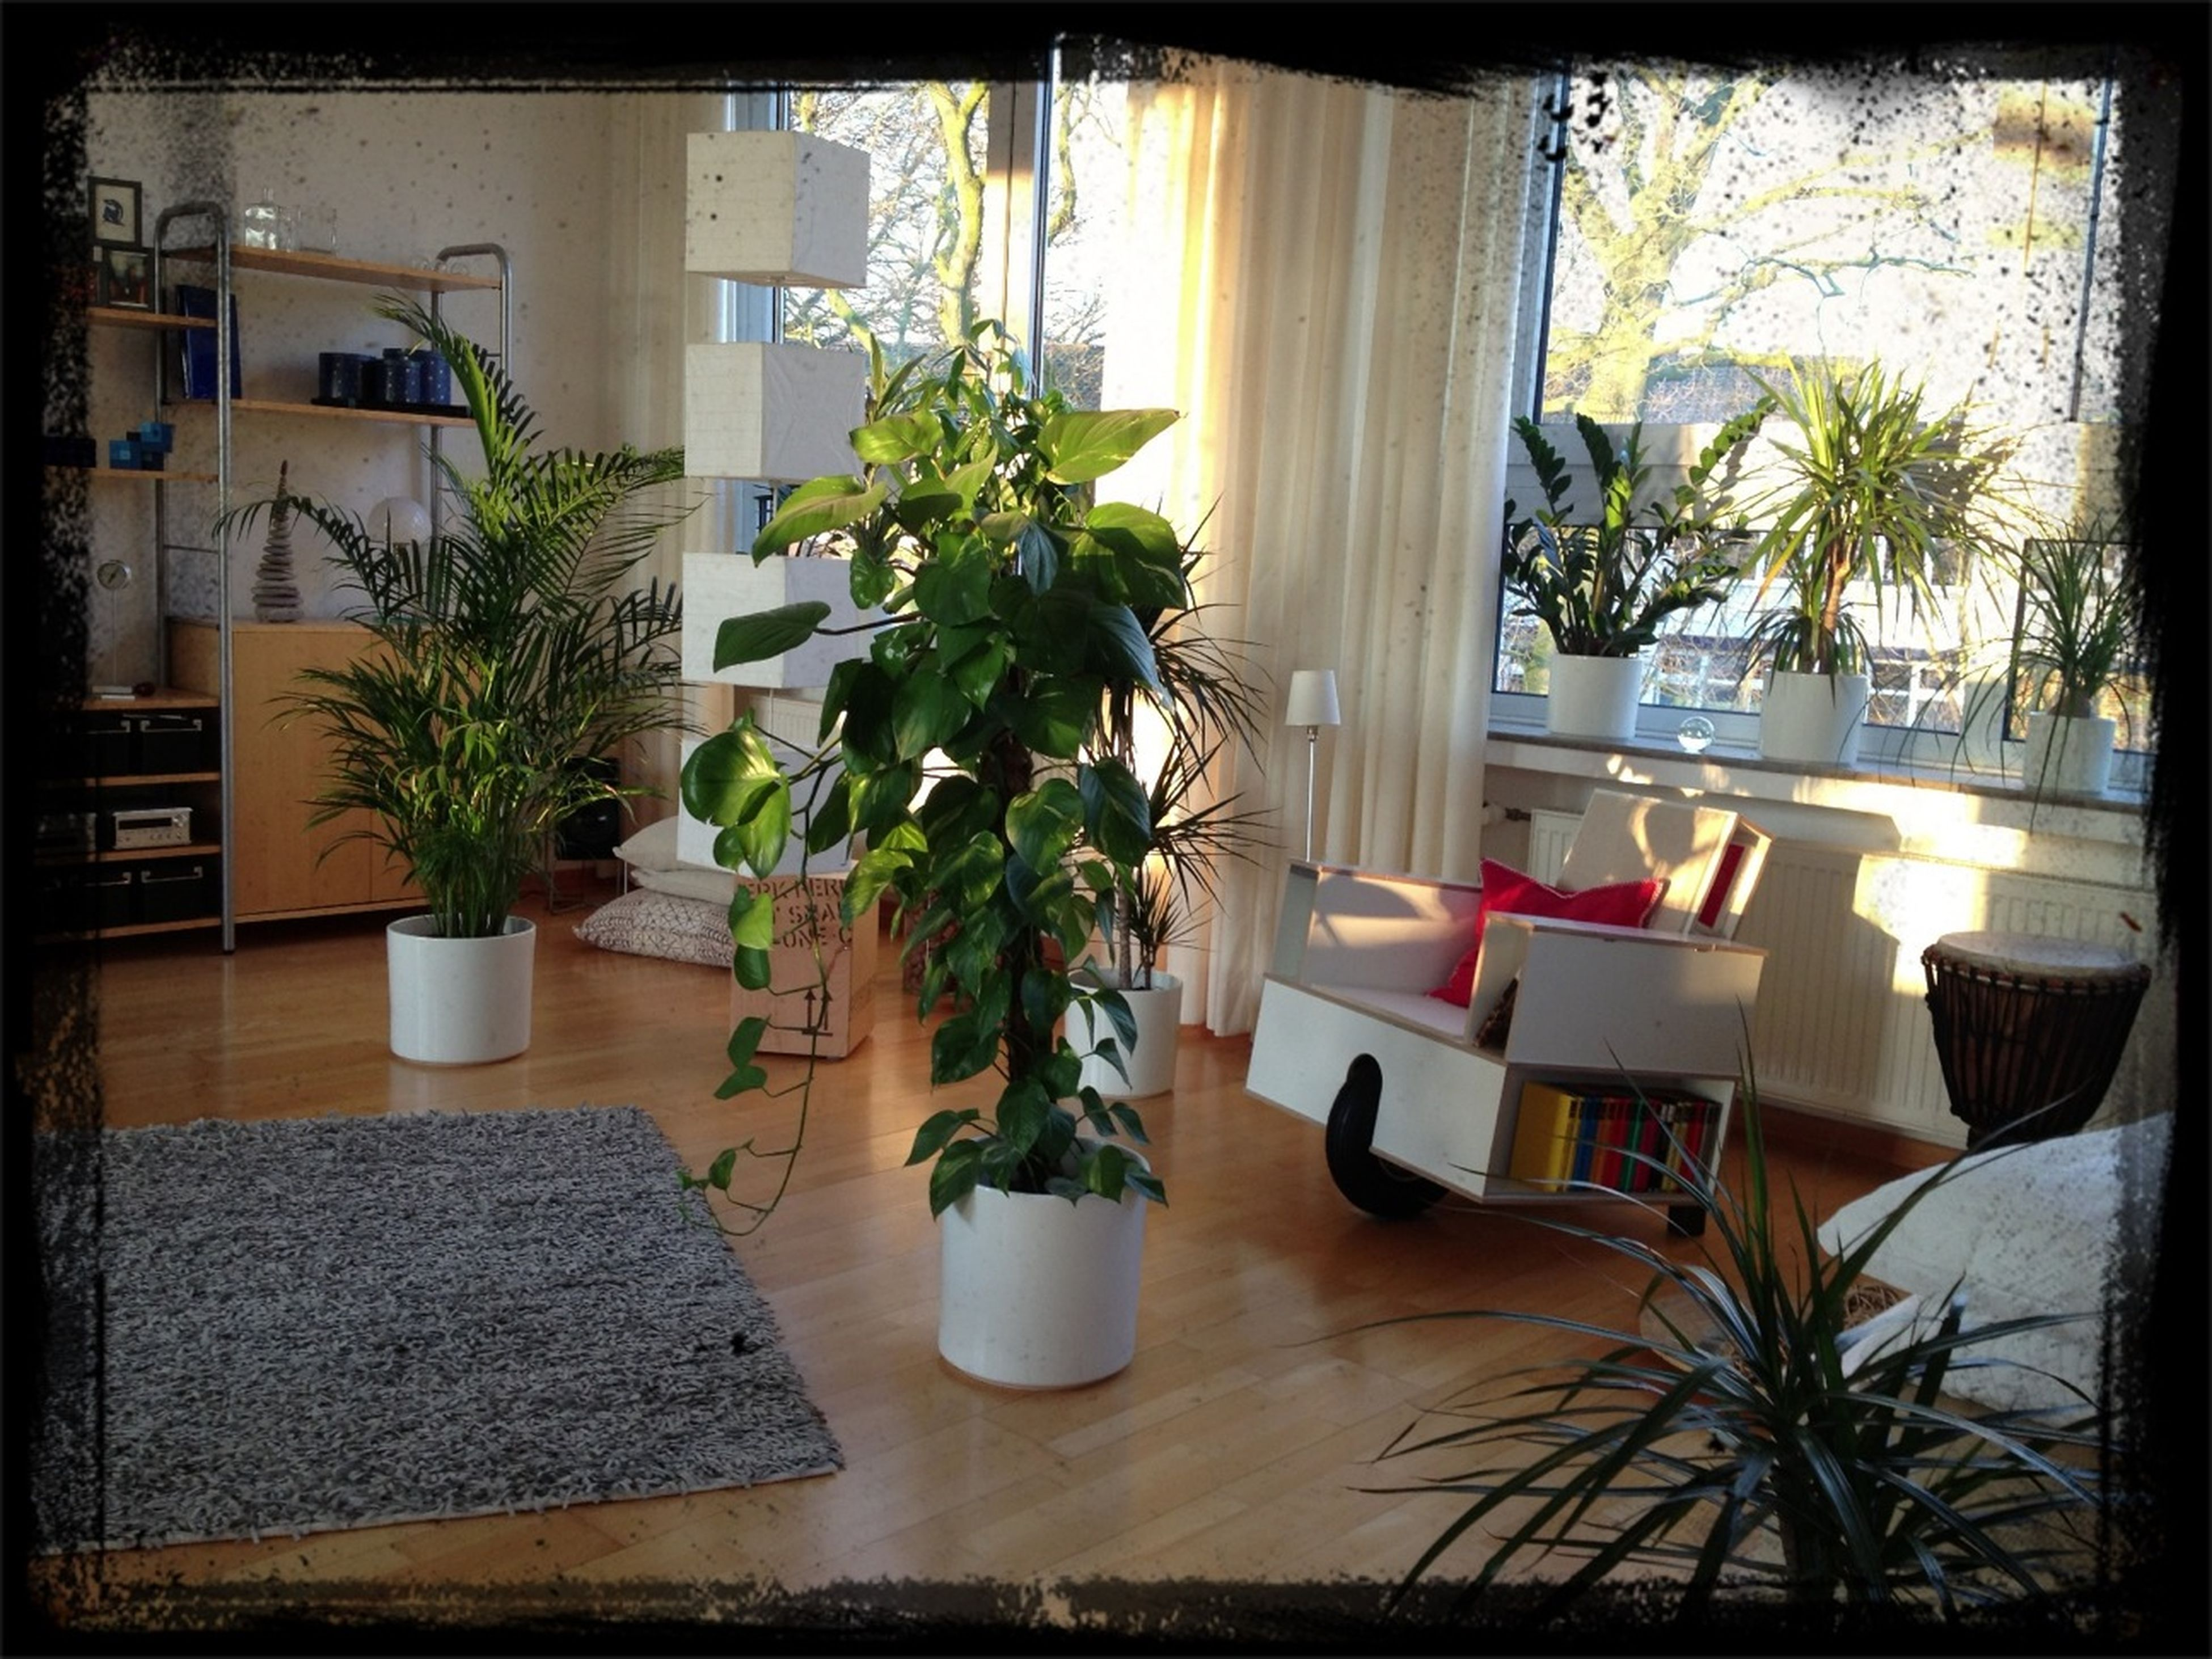 potted plant, table, indoors, chair, transfer print, architecture, plant, built structure, window, house, auto post production filter, absence, growth, empty, building exterior, sunlight, restaurant, home interior, day, flower pot